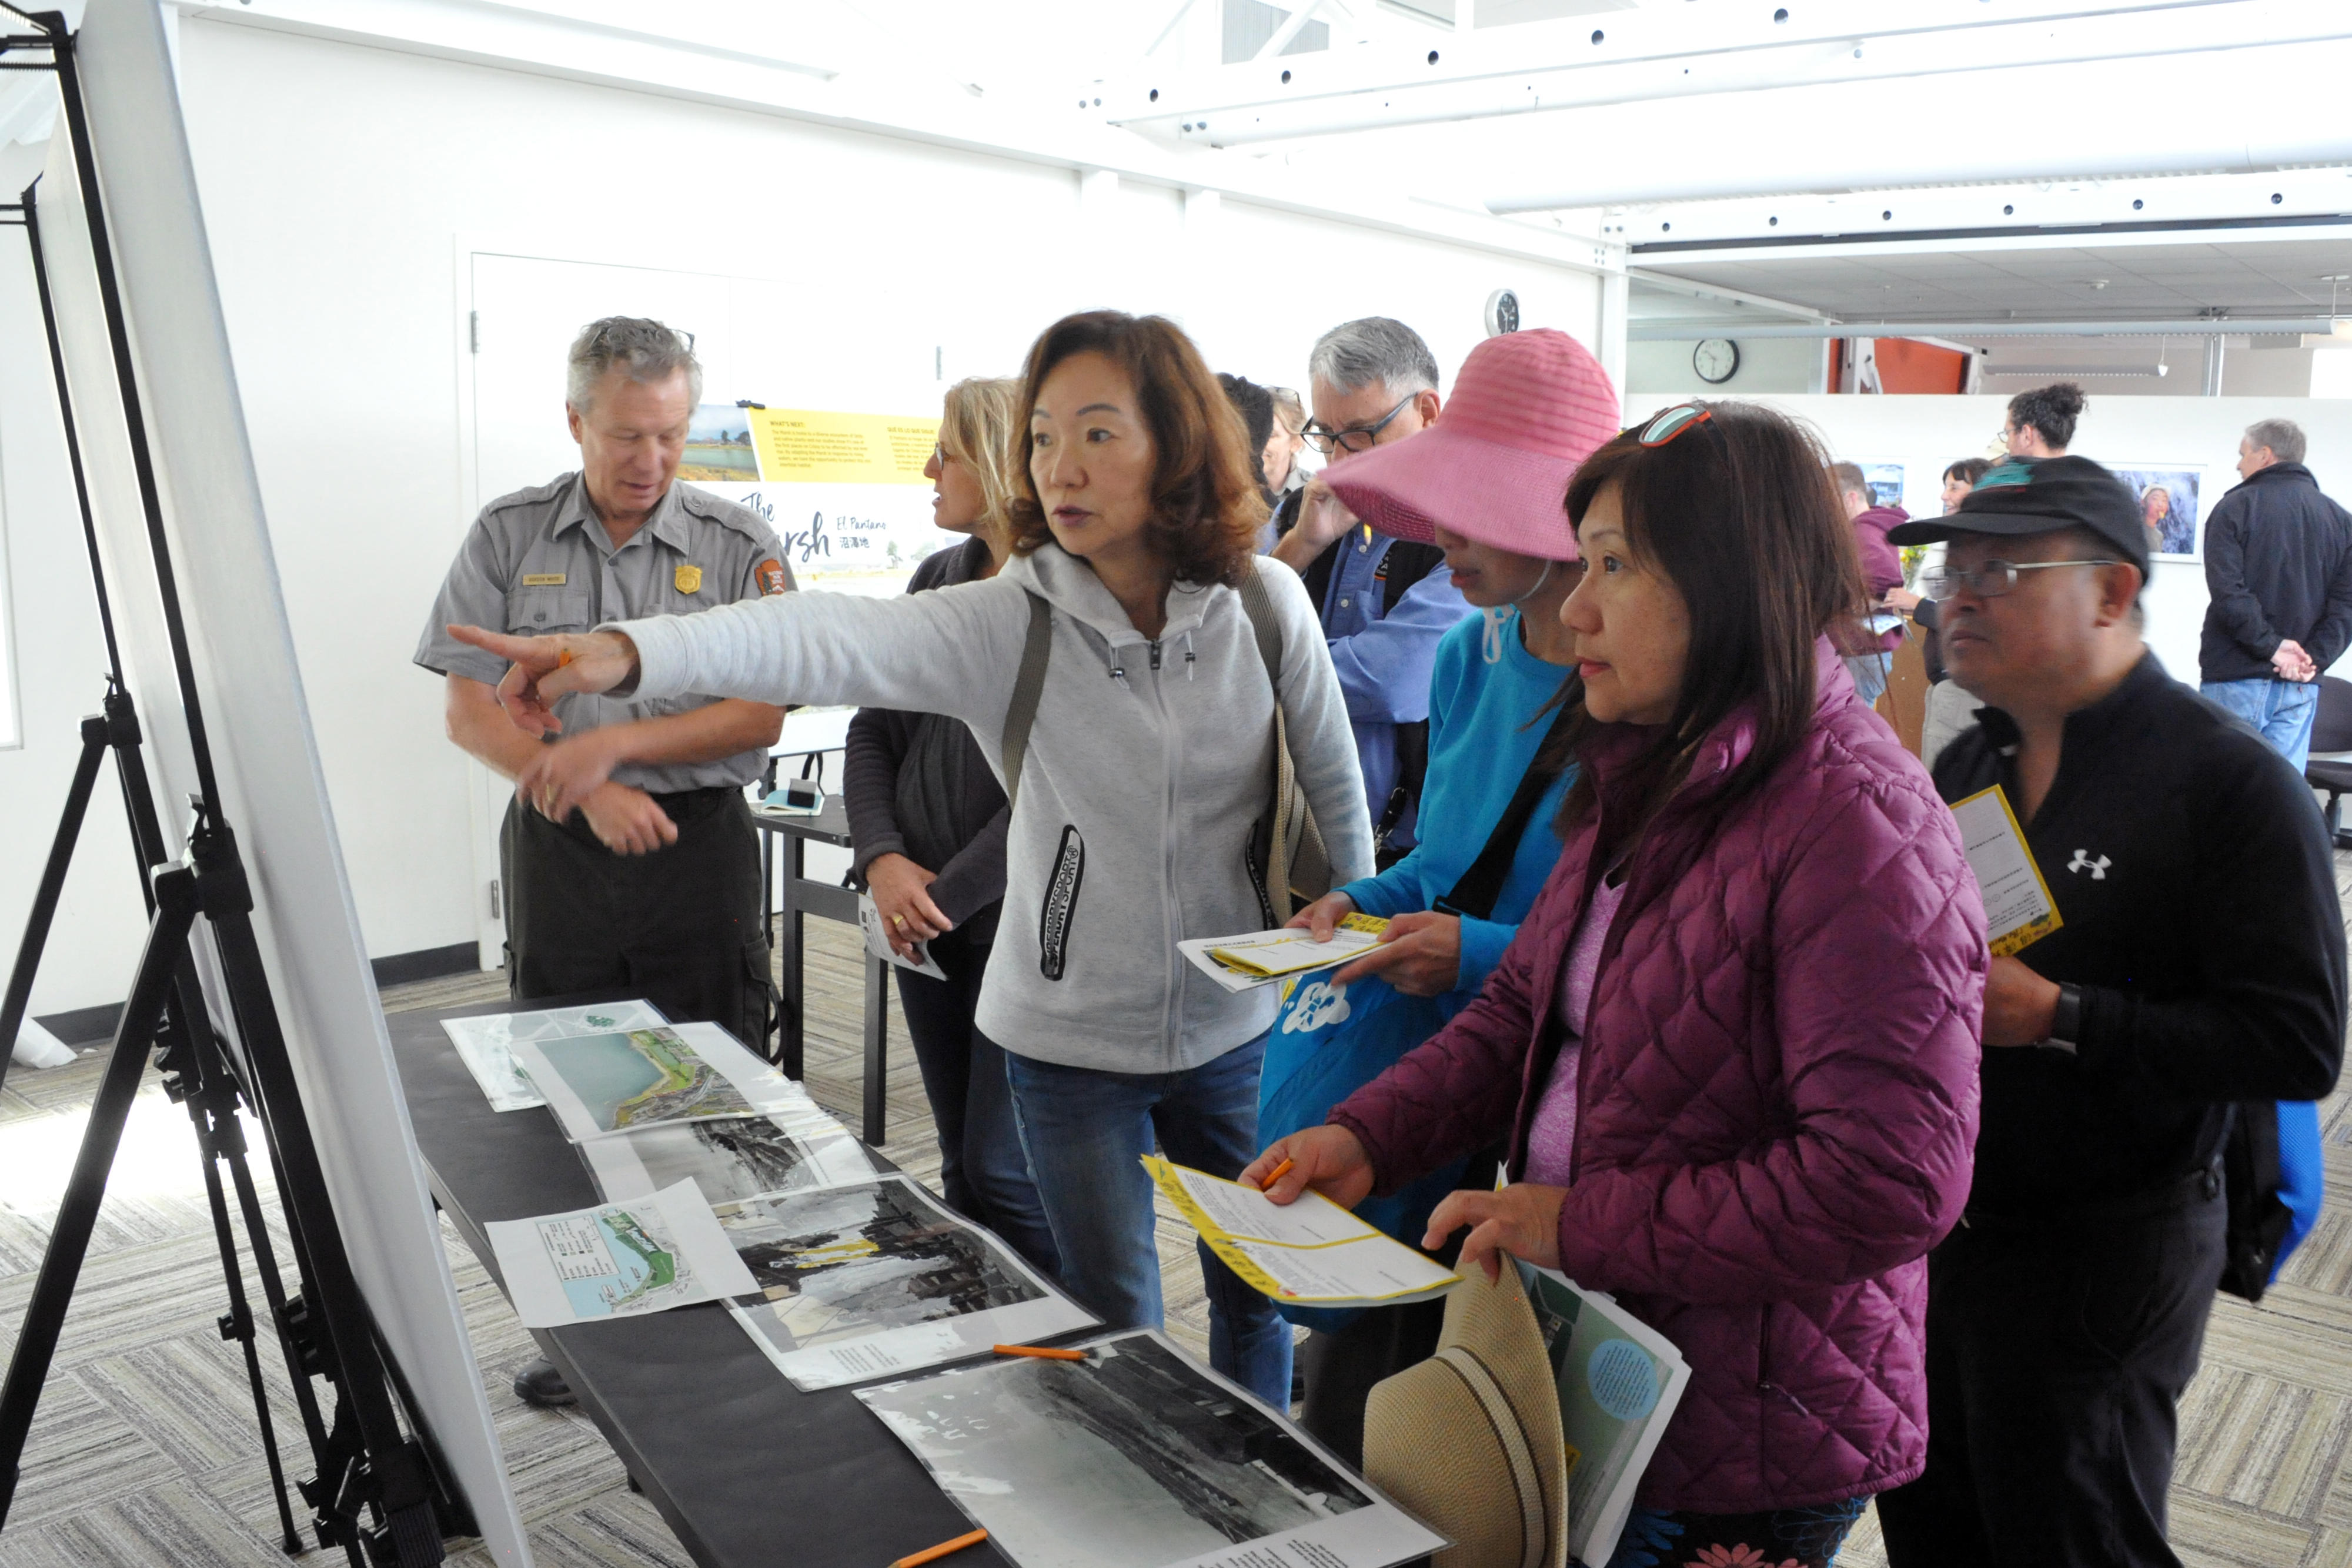 Scenes from Crissy Field Next Open House at the Crissy Field Center on June 1, 2019.